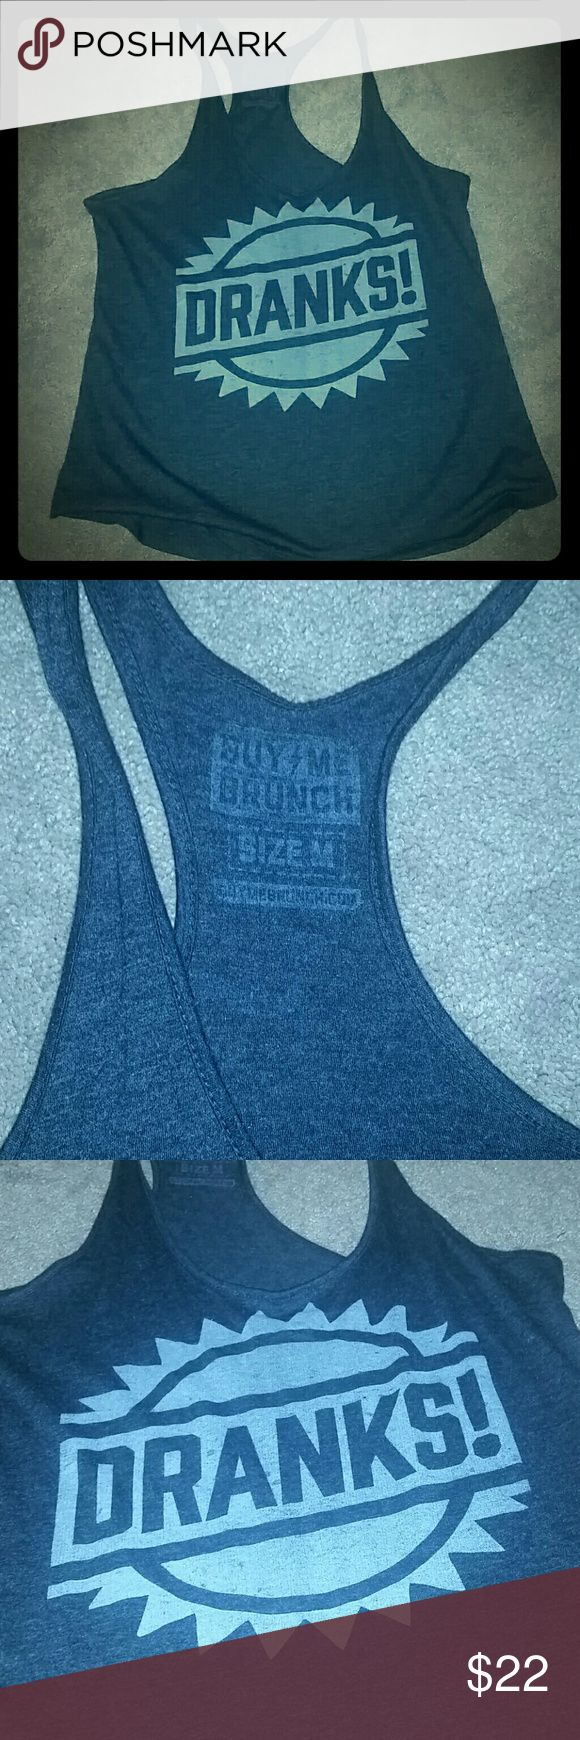 Racer back tank From BUY ME BRUNCH-The Chivery-tank. Brand new, never worn. Buy Me Brunch Tops Tank Tops